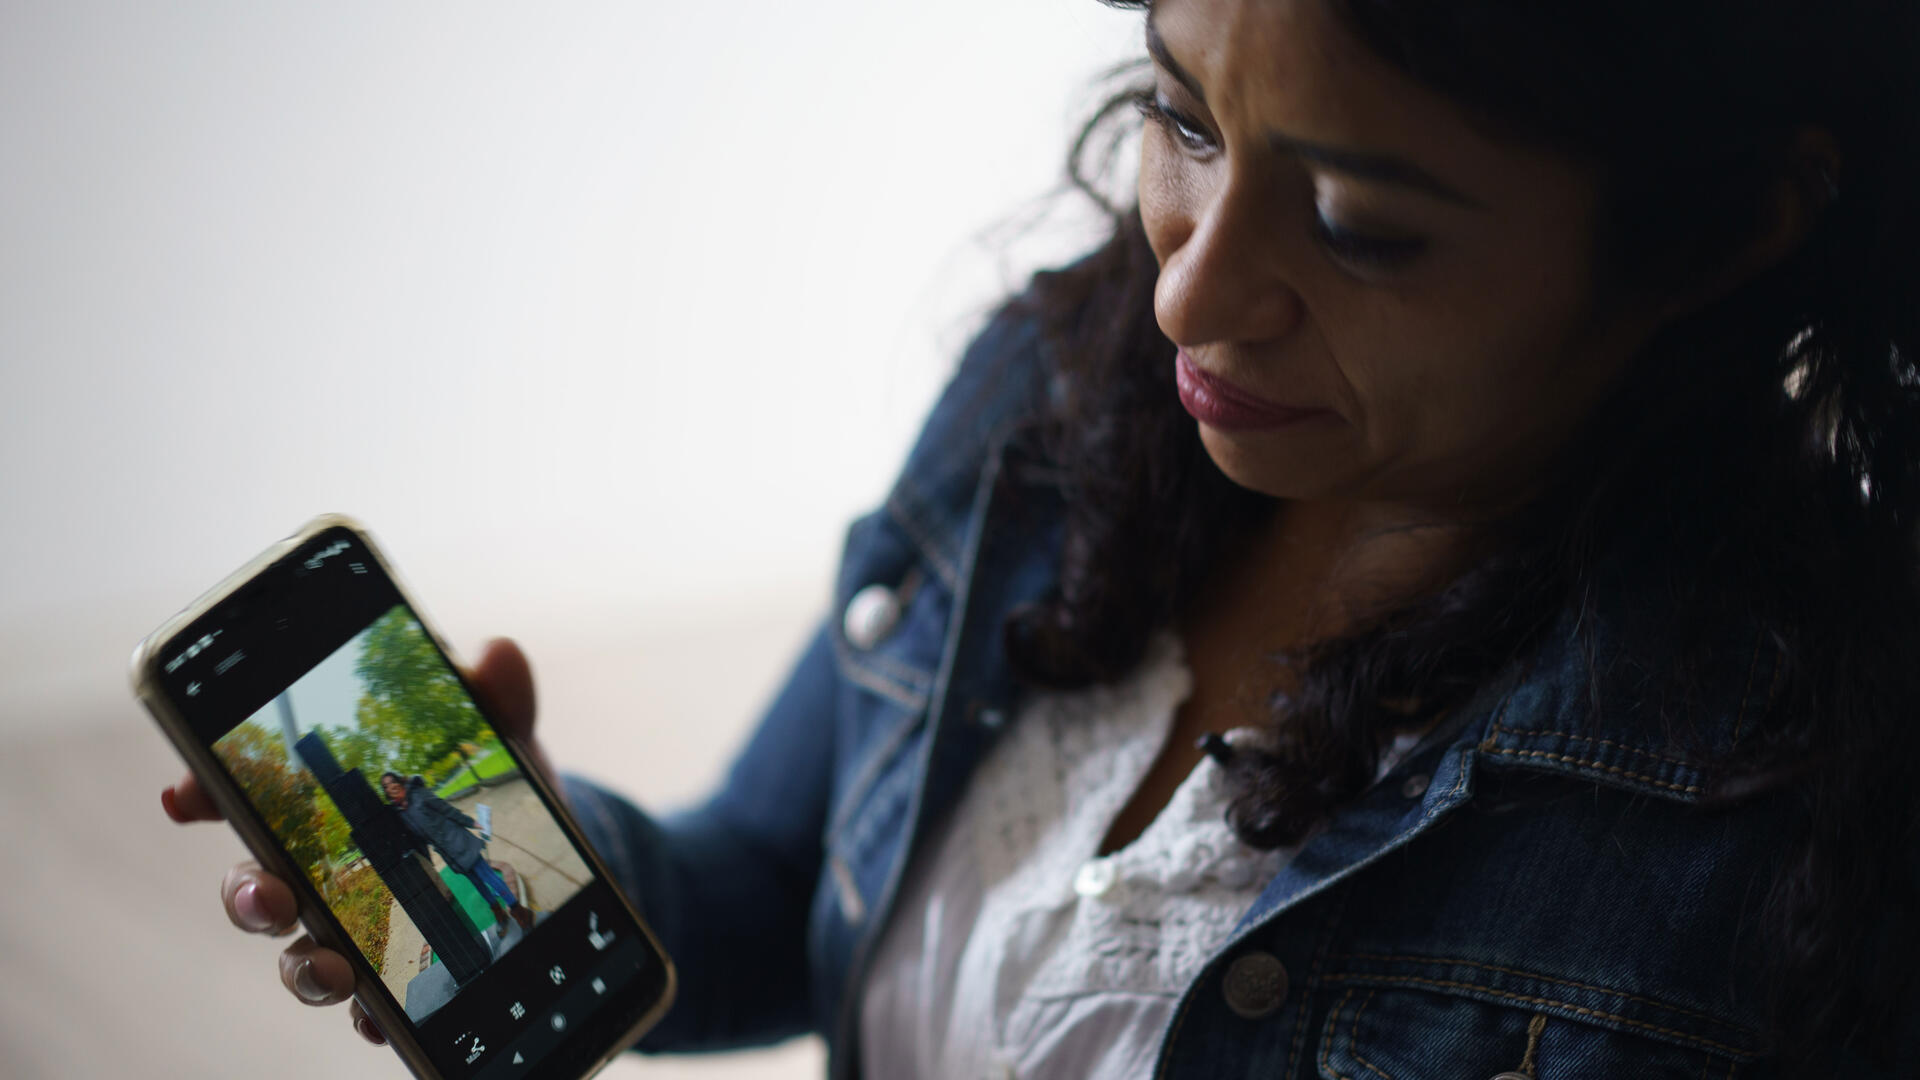 Rosa, wearing a jean jacket, holds an smart phone to show a photo of her daughter, Emily.